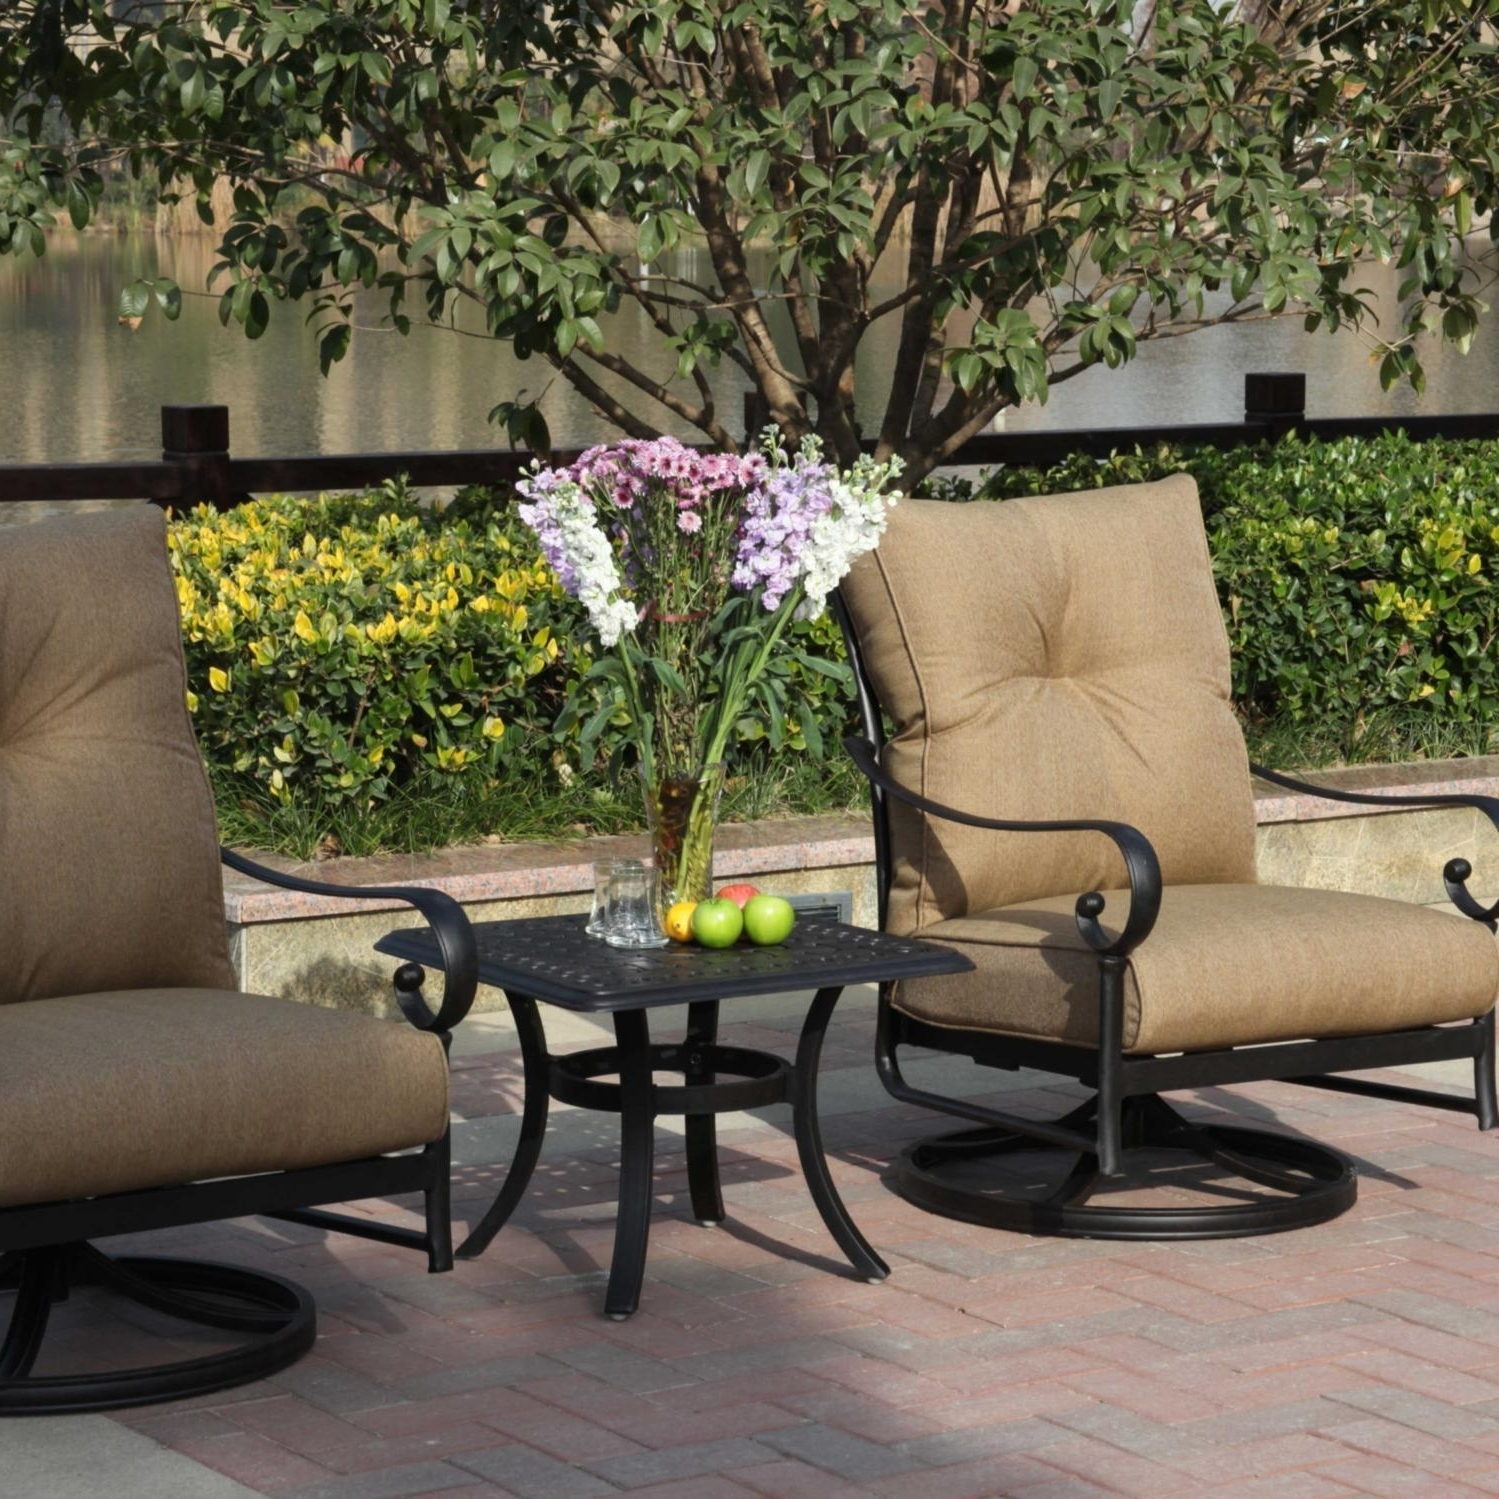 Patio Conversation Sets With Rockers In Fashionable Darlee Santa Anita 3 Piece Cast Aluminum Patio Conversation Seating Set  With Swivel Rockers (View 7 of 15)